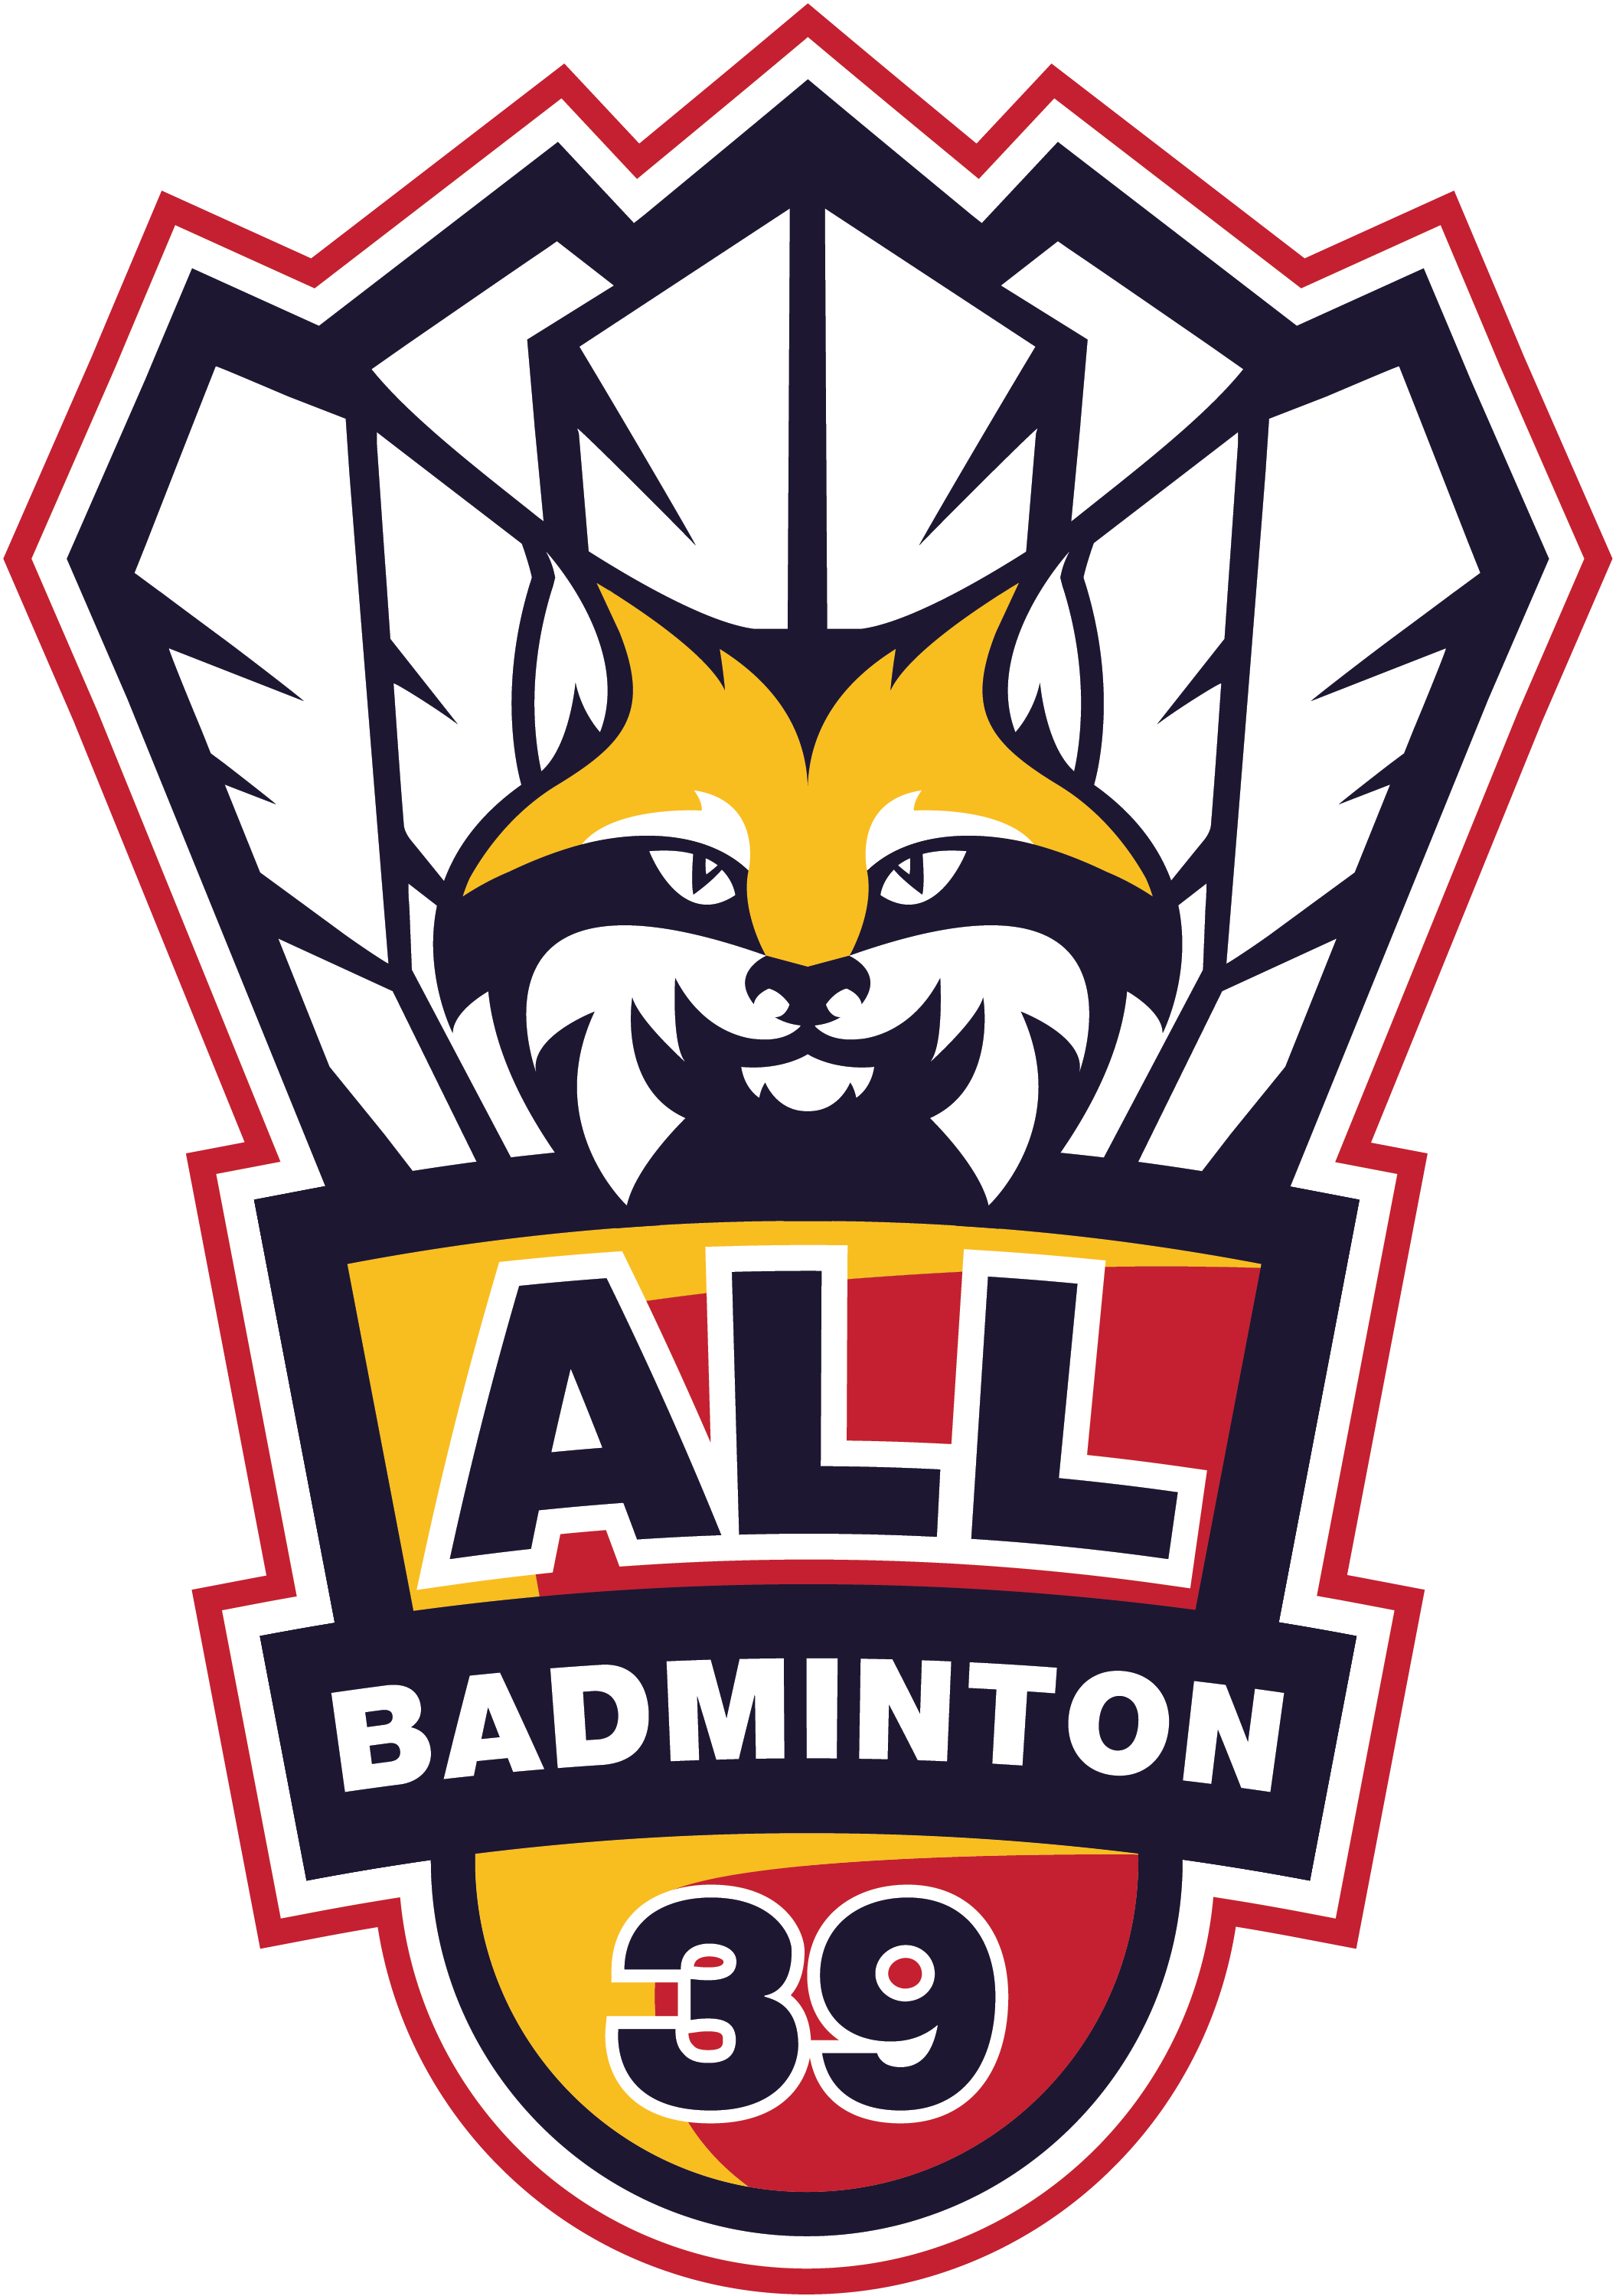 ALL Badminton 39